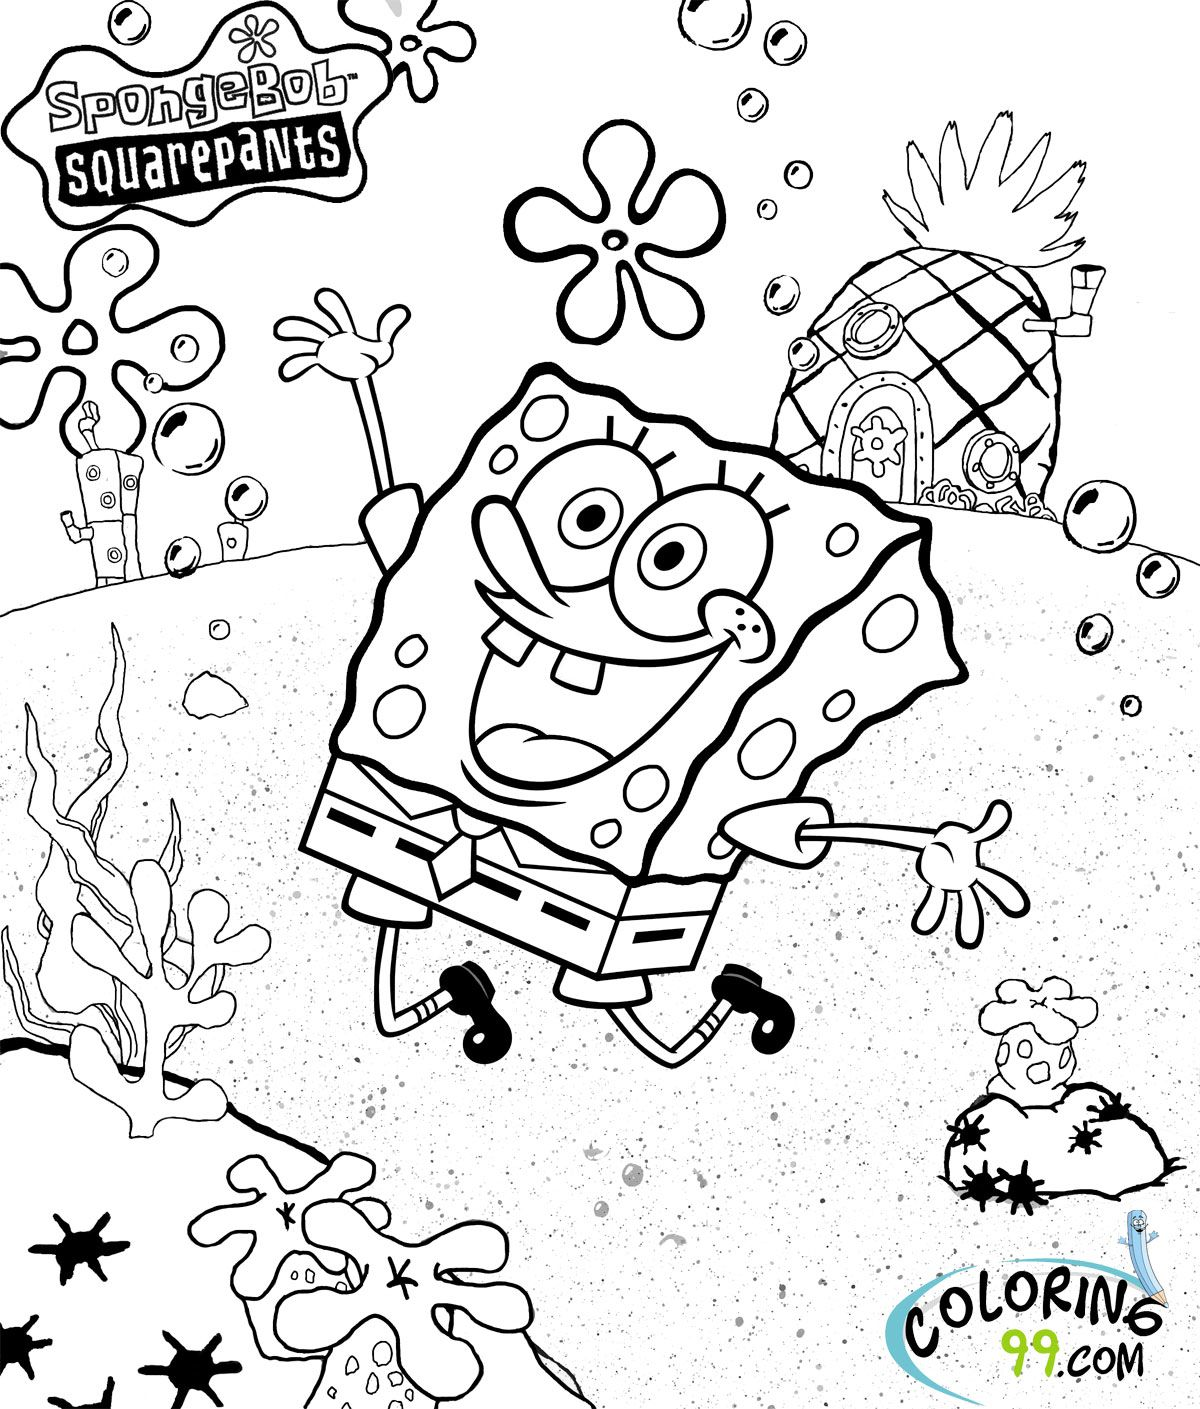 Spongebob And Coloring Pages Cartoon Coloring Pages Spongebob Coloring Designs Coloring Books